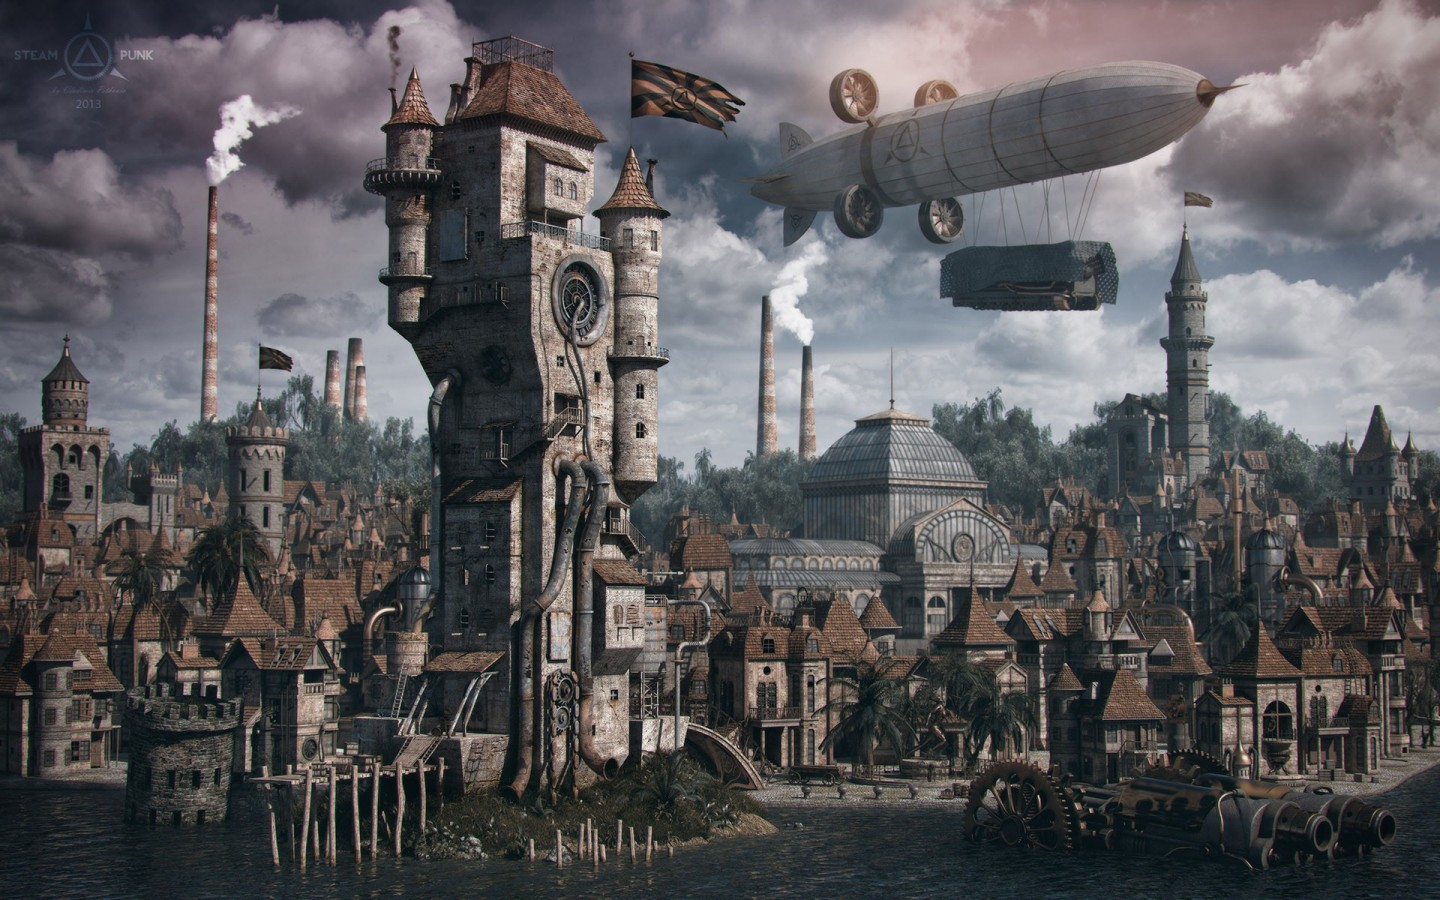 steampunk_cities_1440x900_73848.jpg